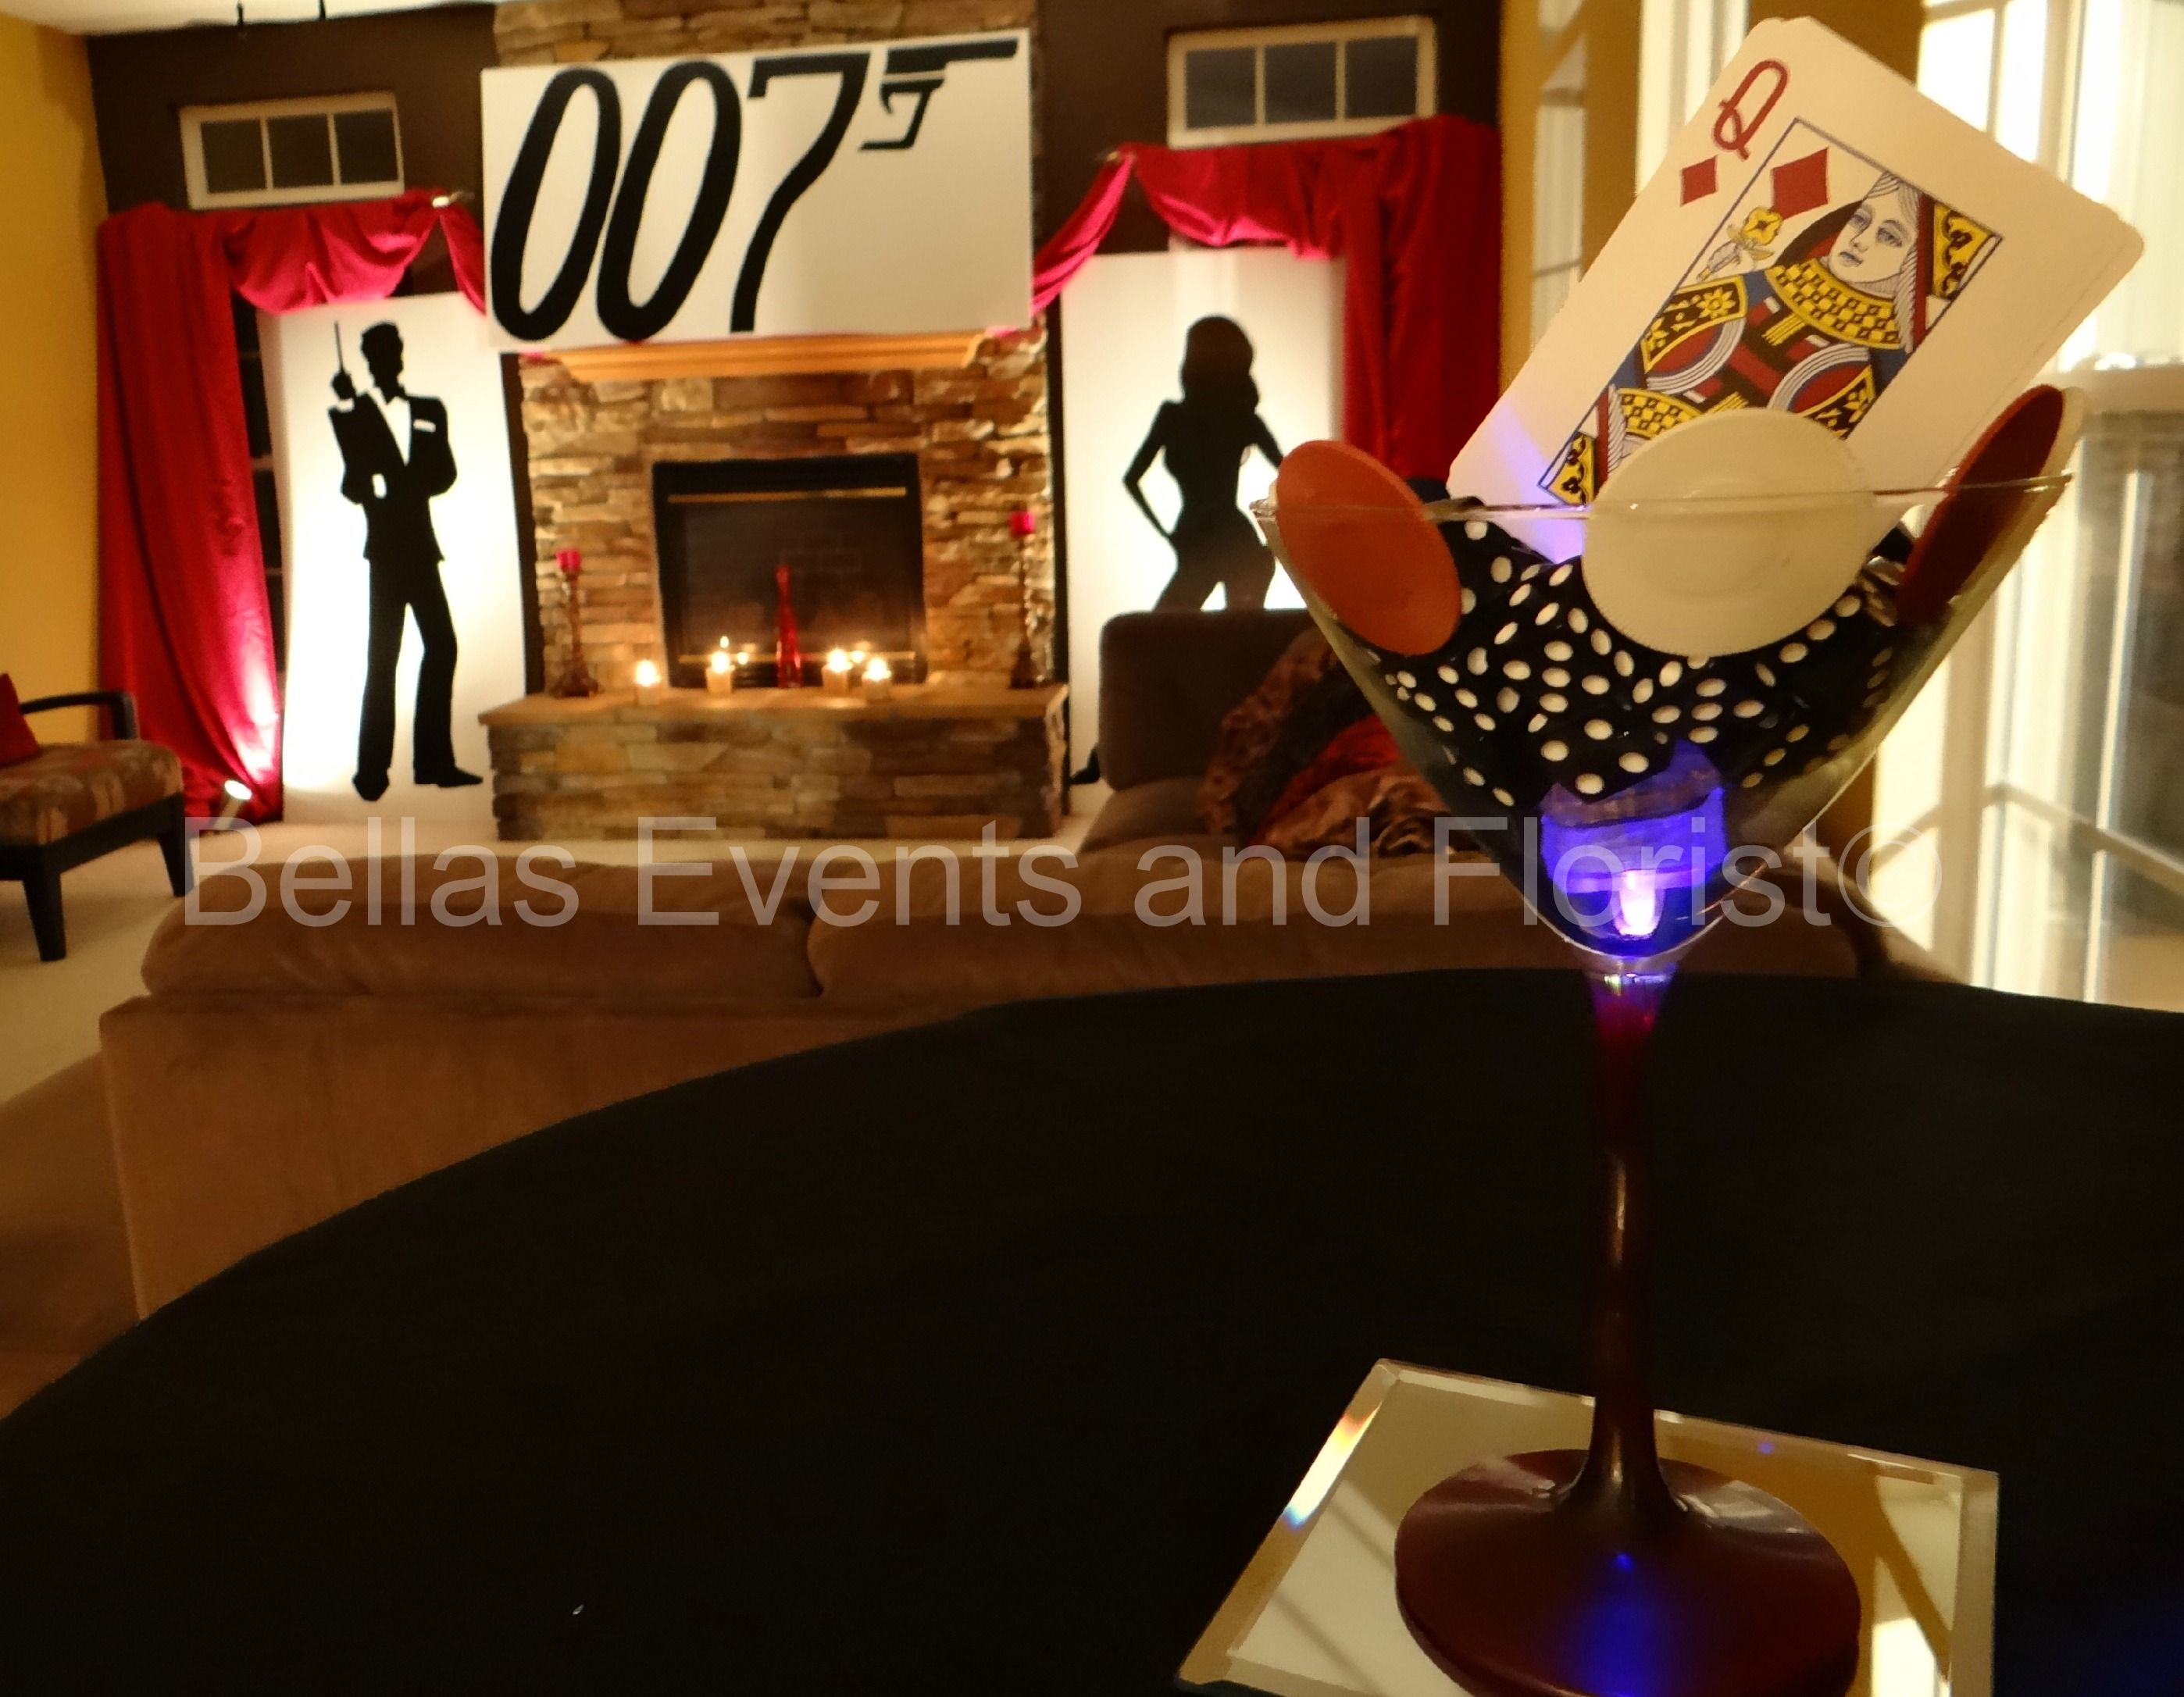 007 party event decorations pinterest james bond for 007 decoration ideas